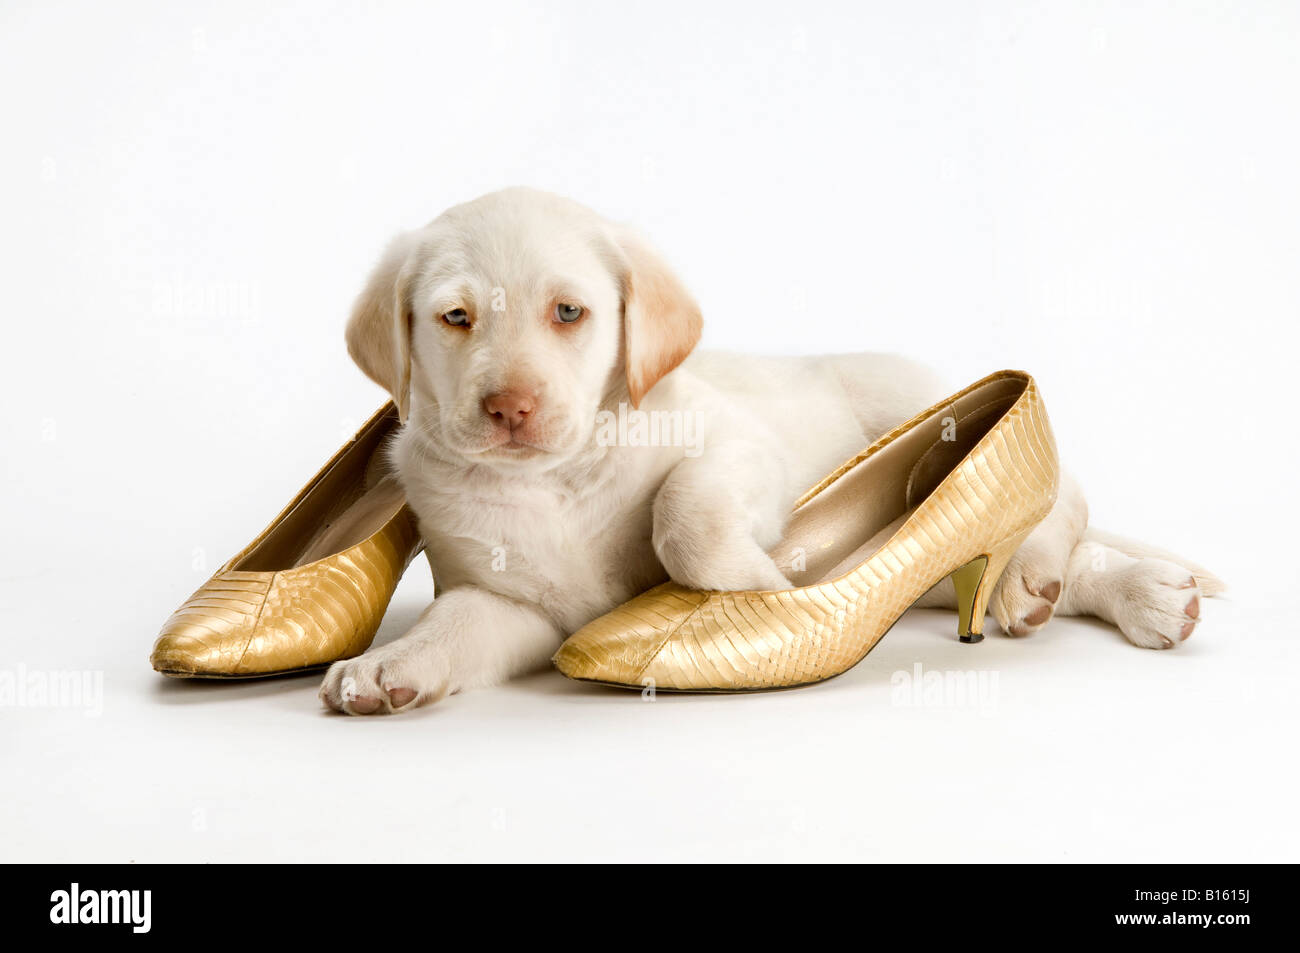 white yellow Labrador puppy with gold shoes on white background - Stock Image